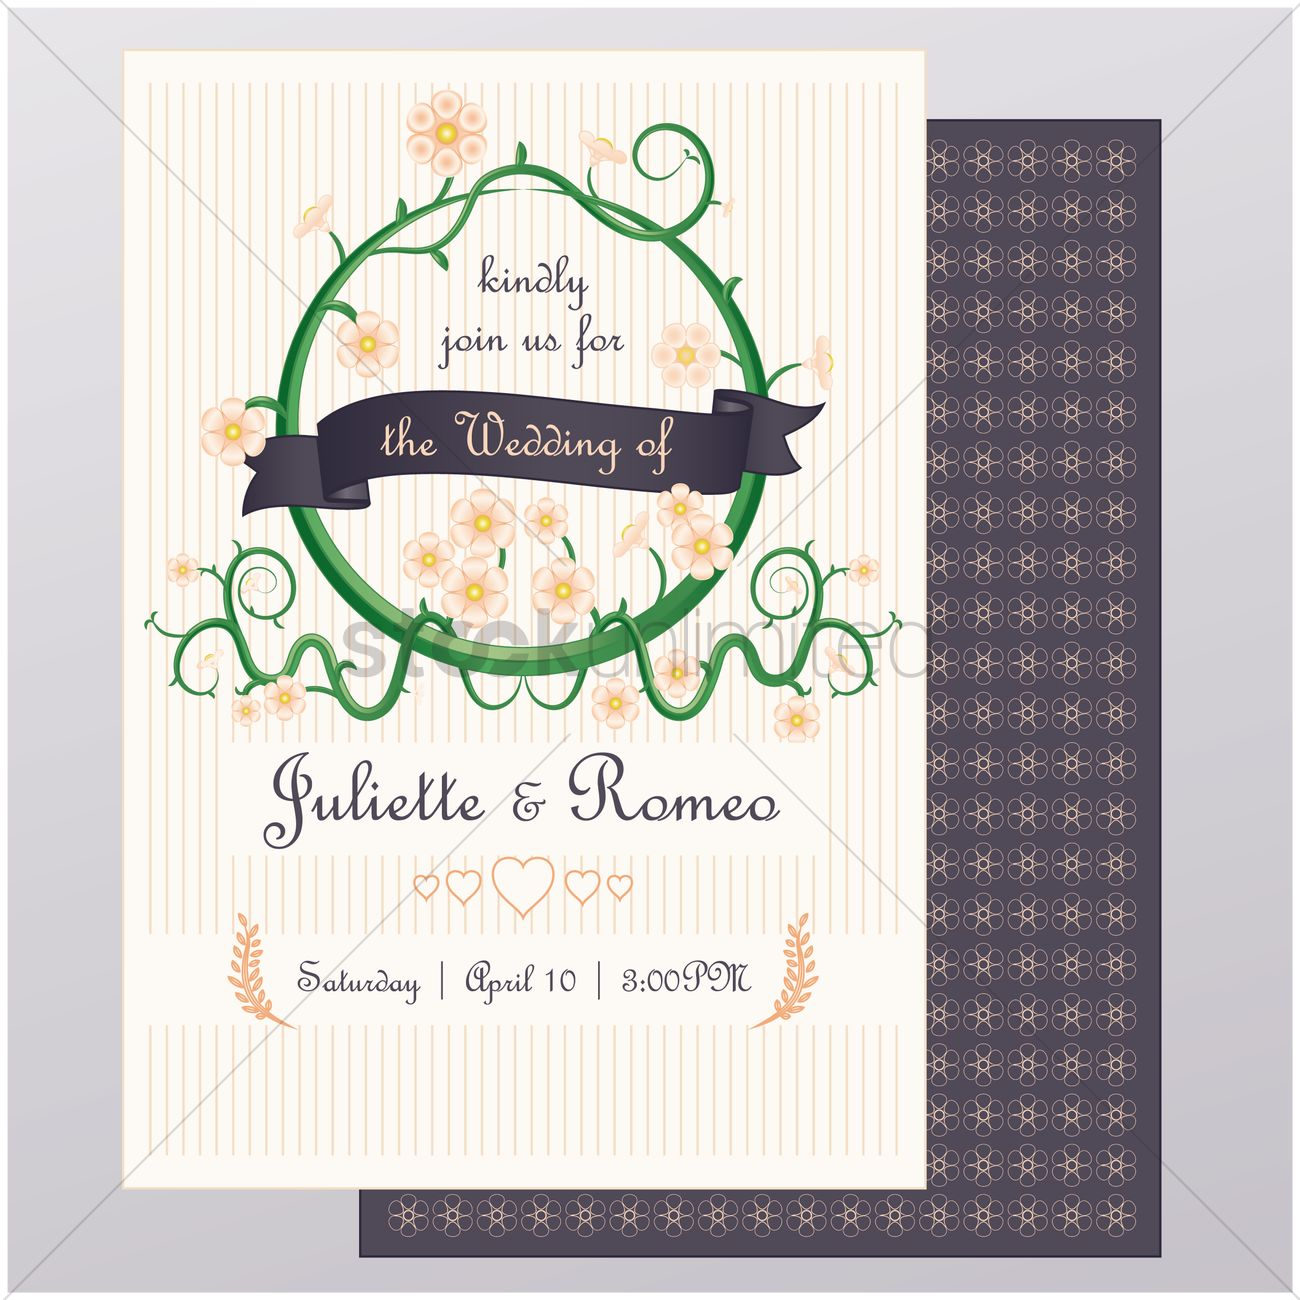 Wedding invitation card Vector Image - 1821695 | StockUnlimited